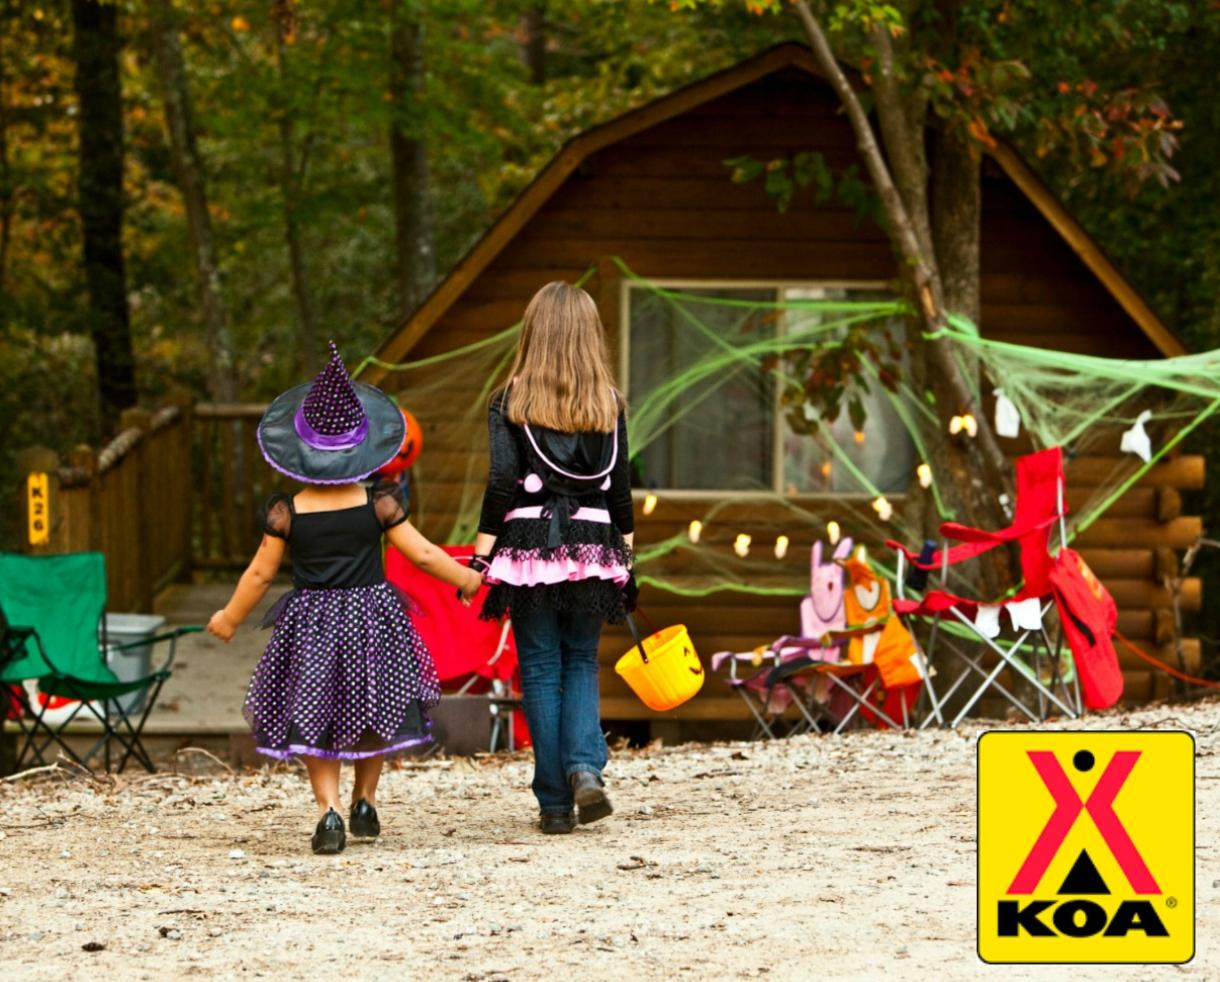 $119 for Williamsburg KOA 2-Night CABIN or 3-Night CAMPSITE Getaway (Up to 60% Off!)